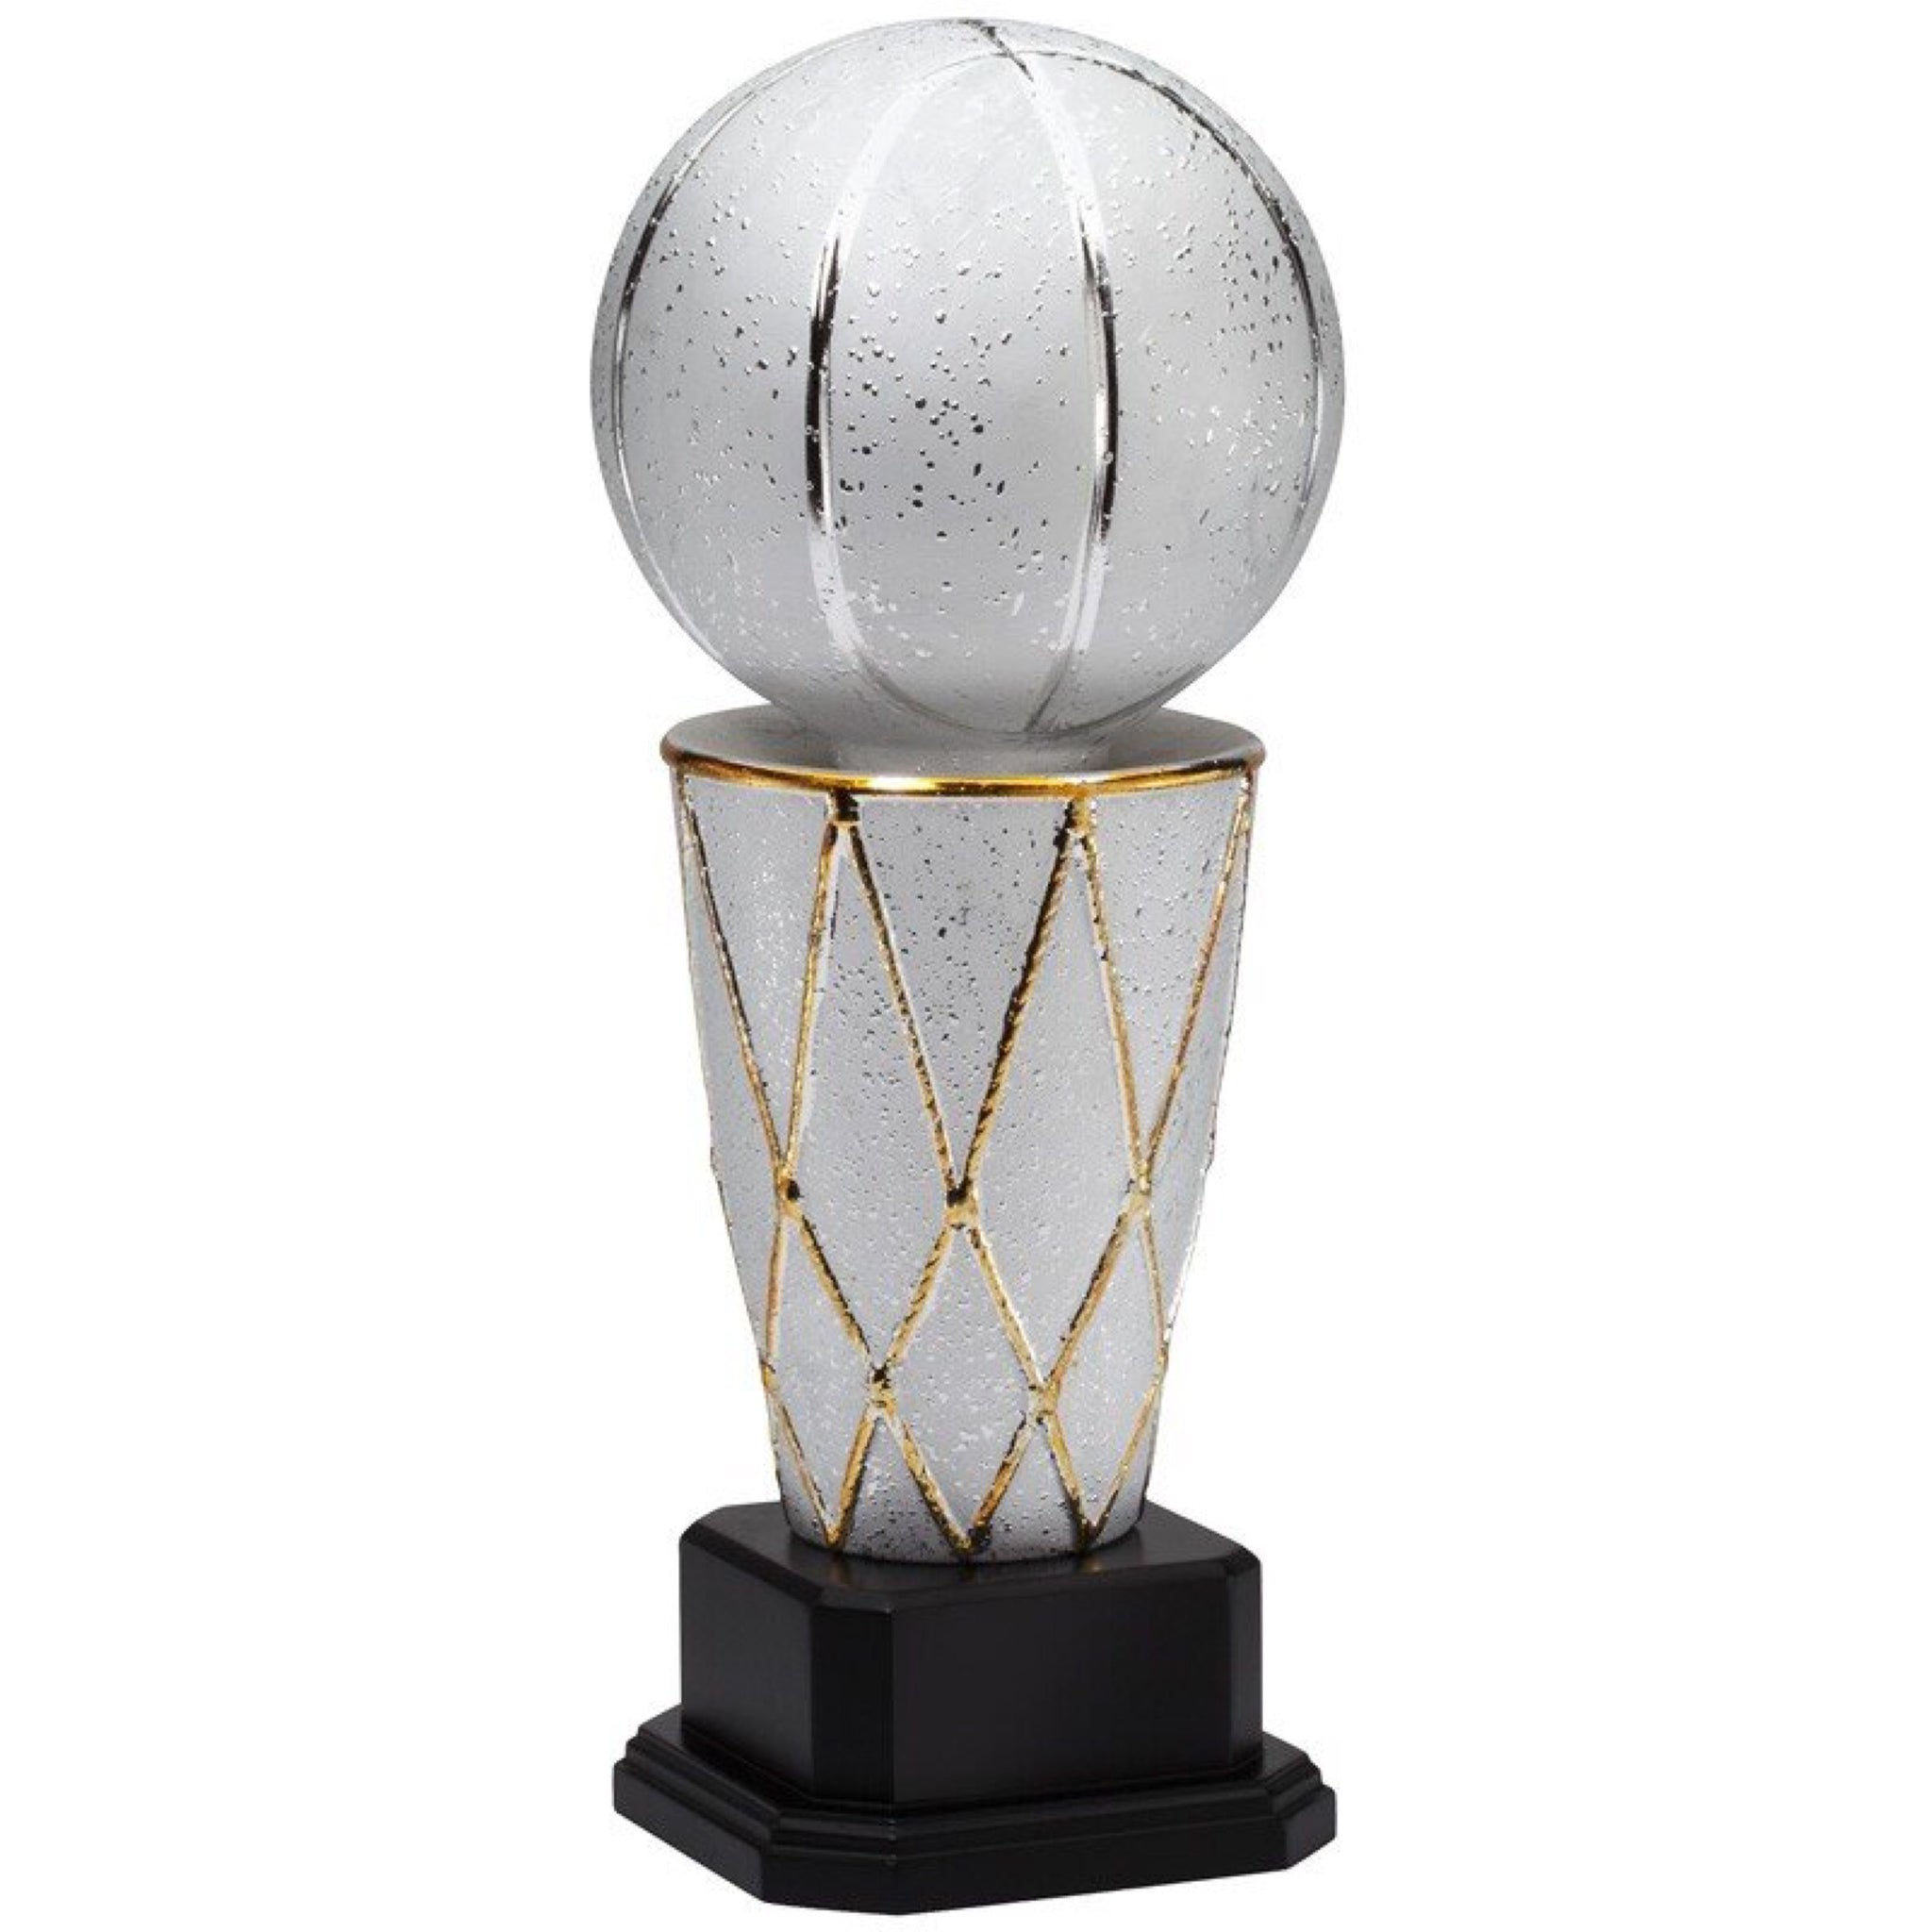 Extra large silver ceramic basketball trophy featuring a black wood base and a tall basketball net with a large shiny silver basketball sitting on top.